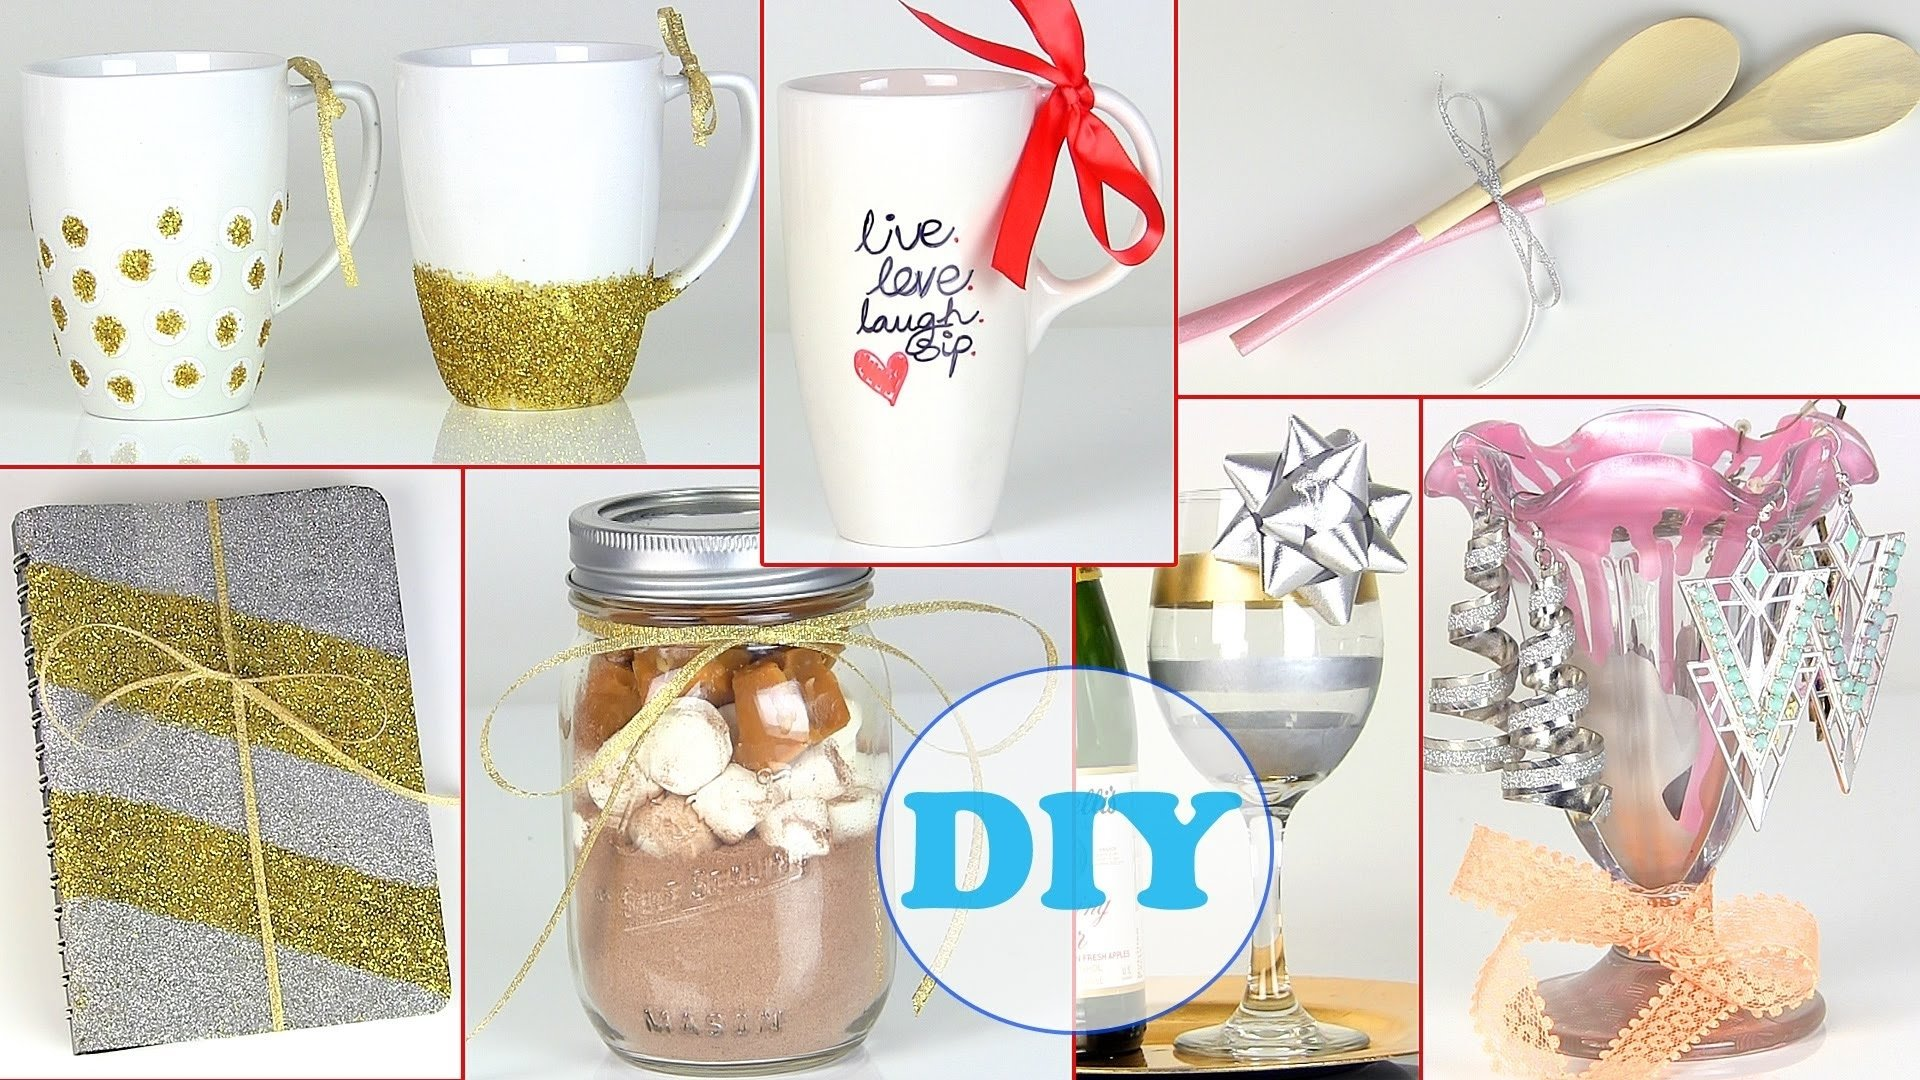 10 Elegant Gift Ideas For Male Friends 10 diy gift ideas last minute diy holiday gift ideas youtube 2 2020